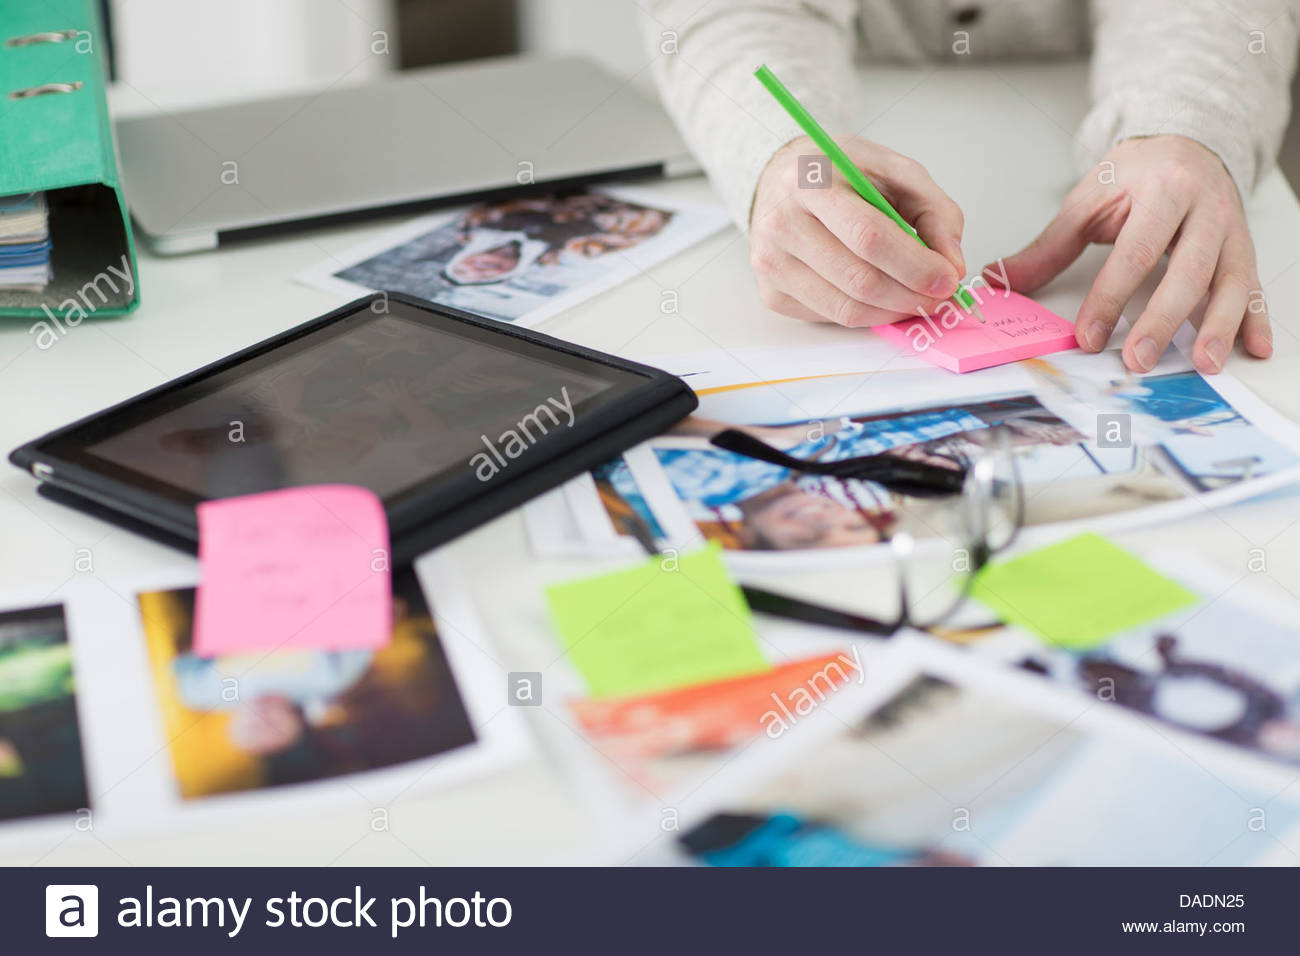 Man making notes on desk with digital tablet and photographs - Stock Image